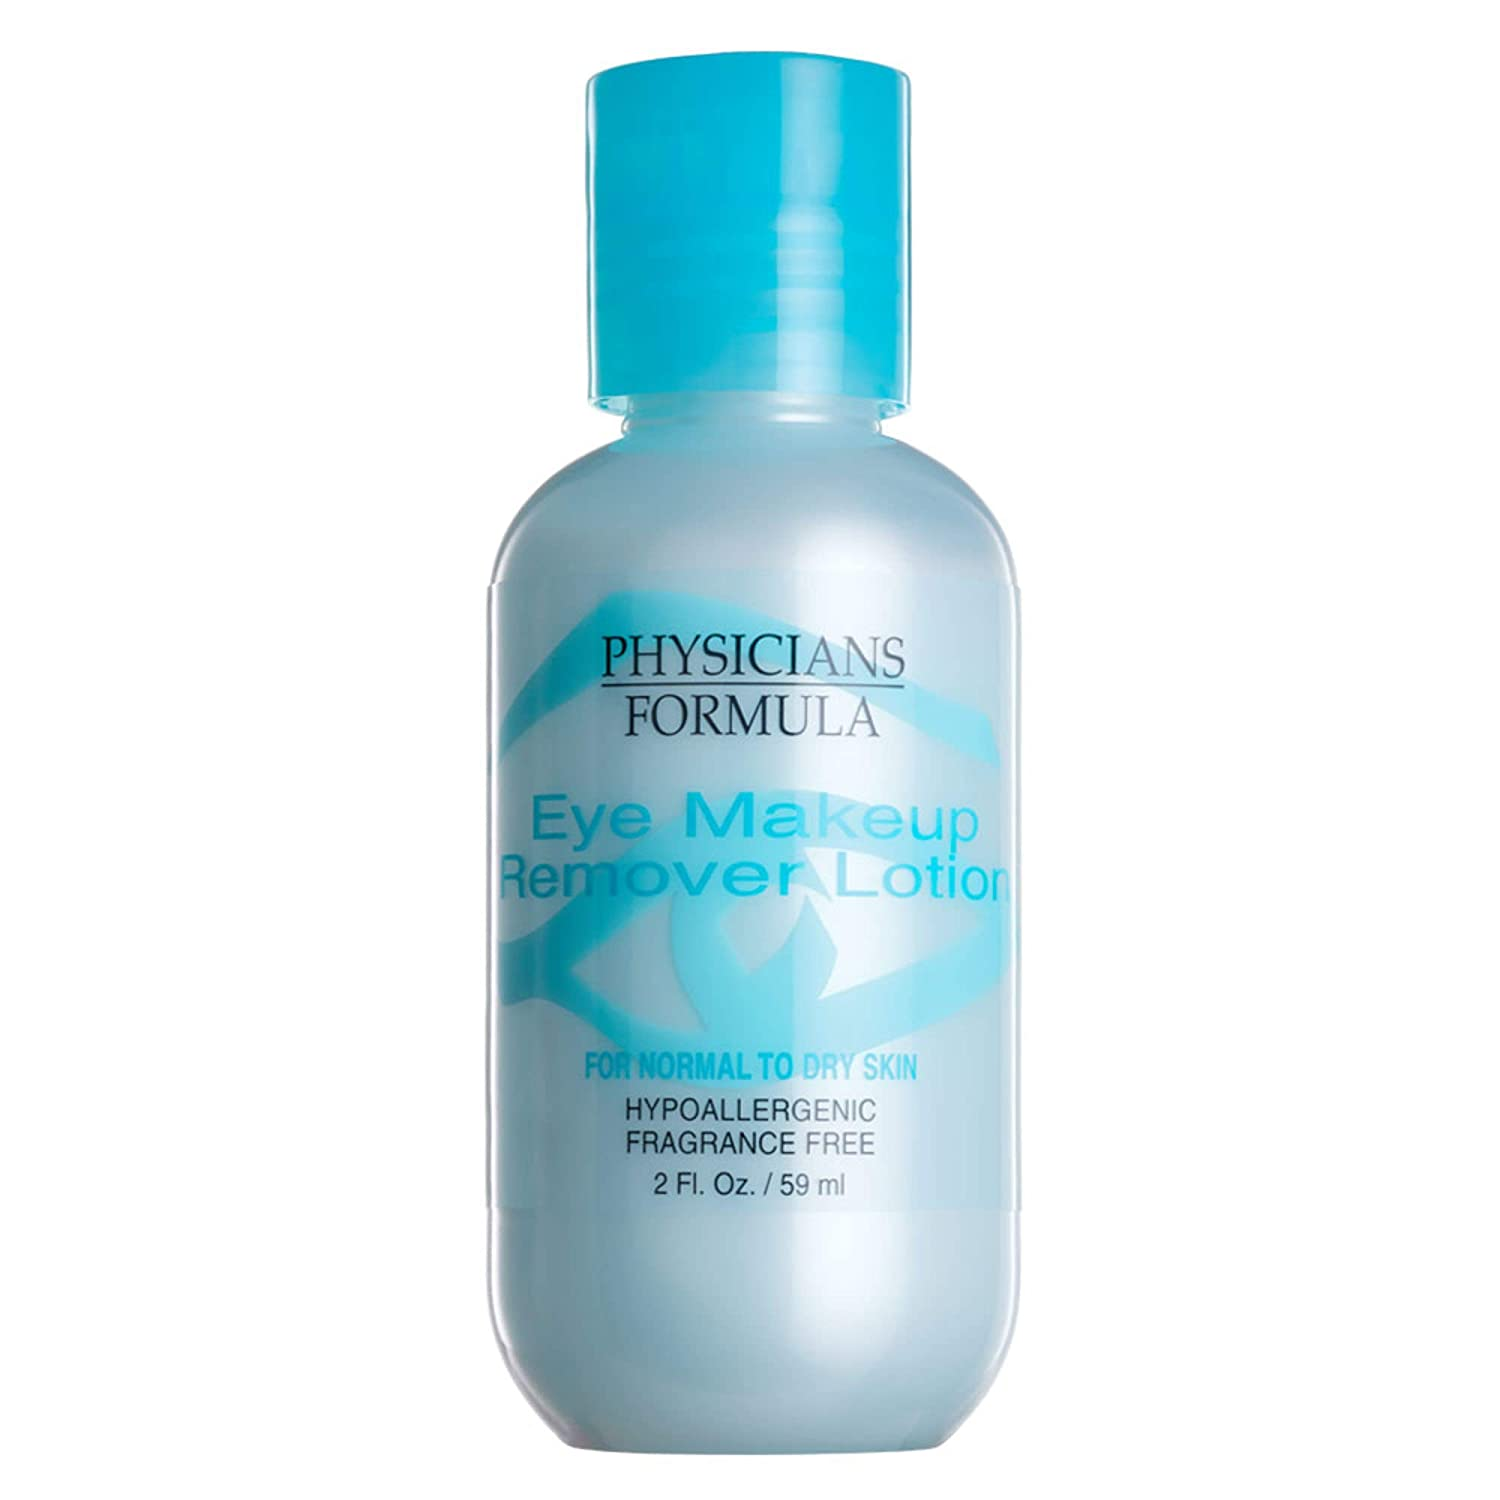 Physicians Formula Eye Makeup Remover Lotion for Normal to Dry Skin, 2 Fluid Ounce : Beauty